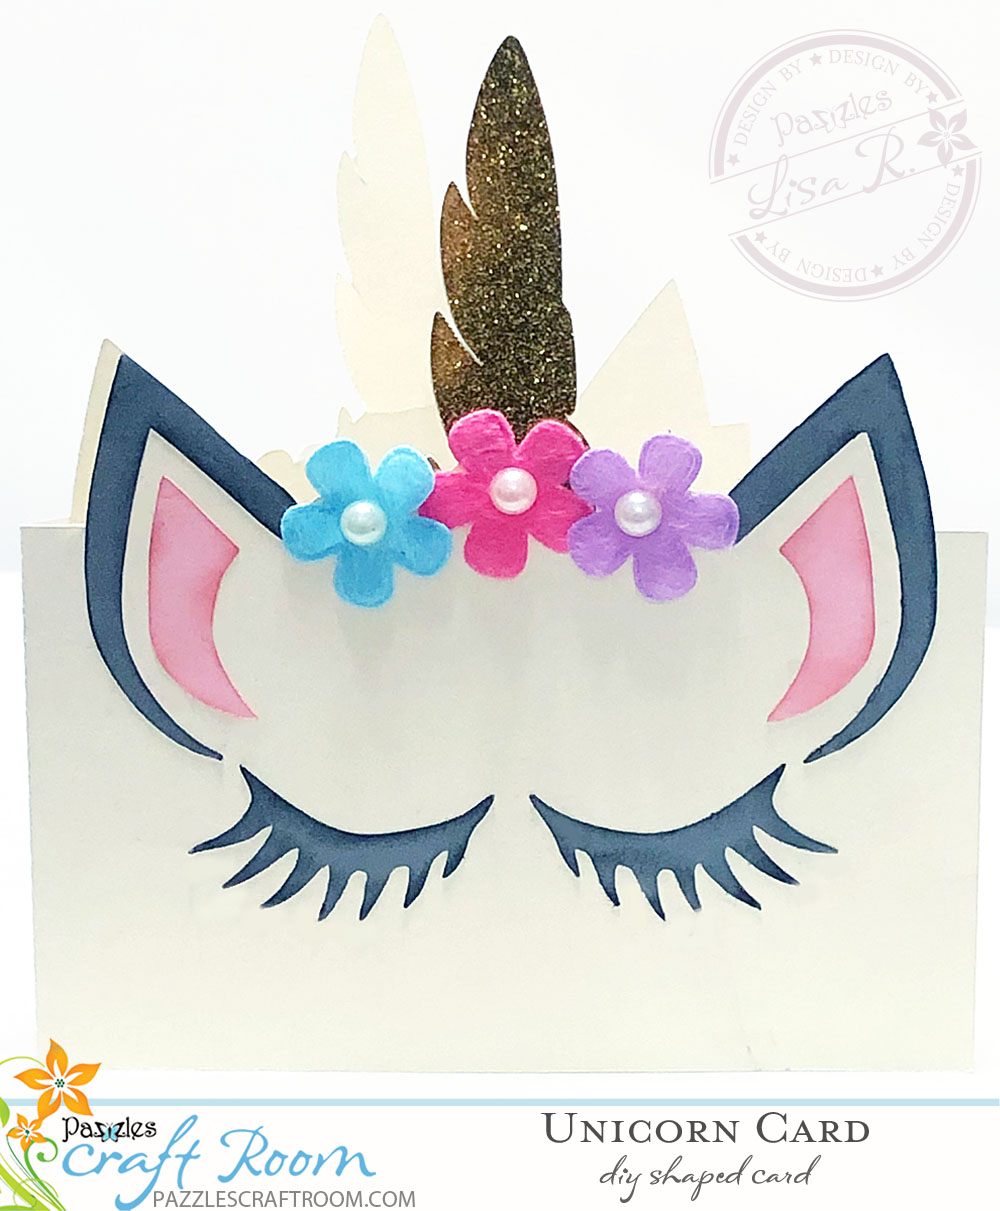 Pazzles DIY Unicorn Card by Lisa Reyna